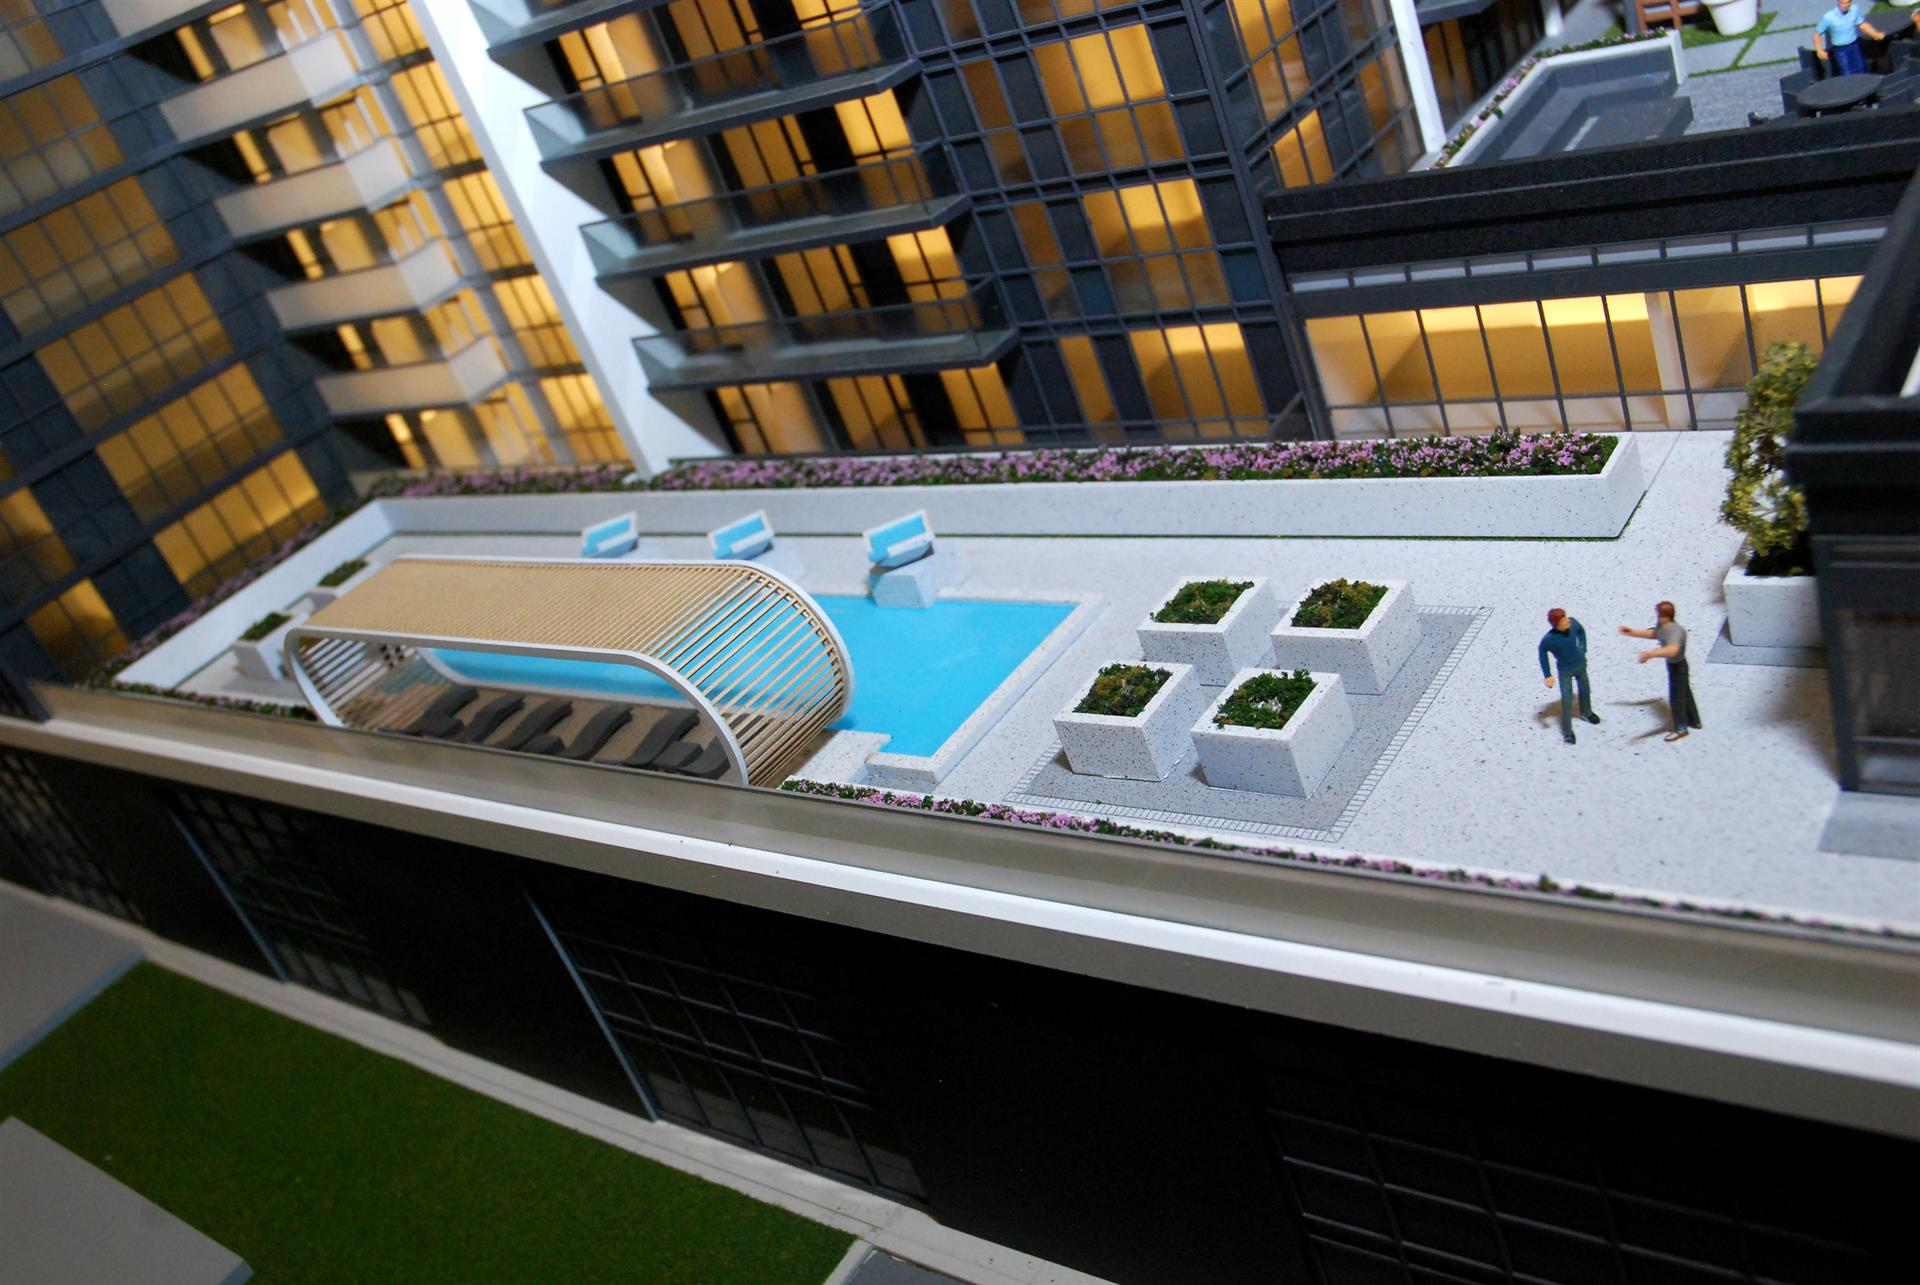 5959 Yonge: The Condo That Has All You Need Image